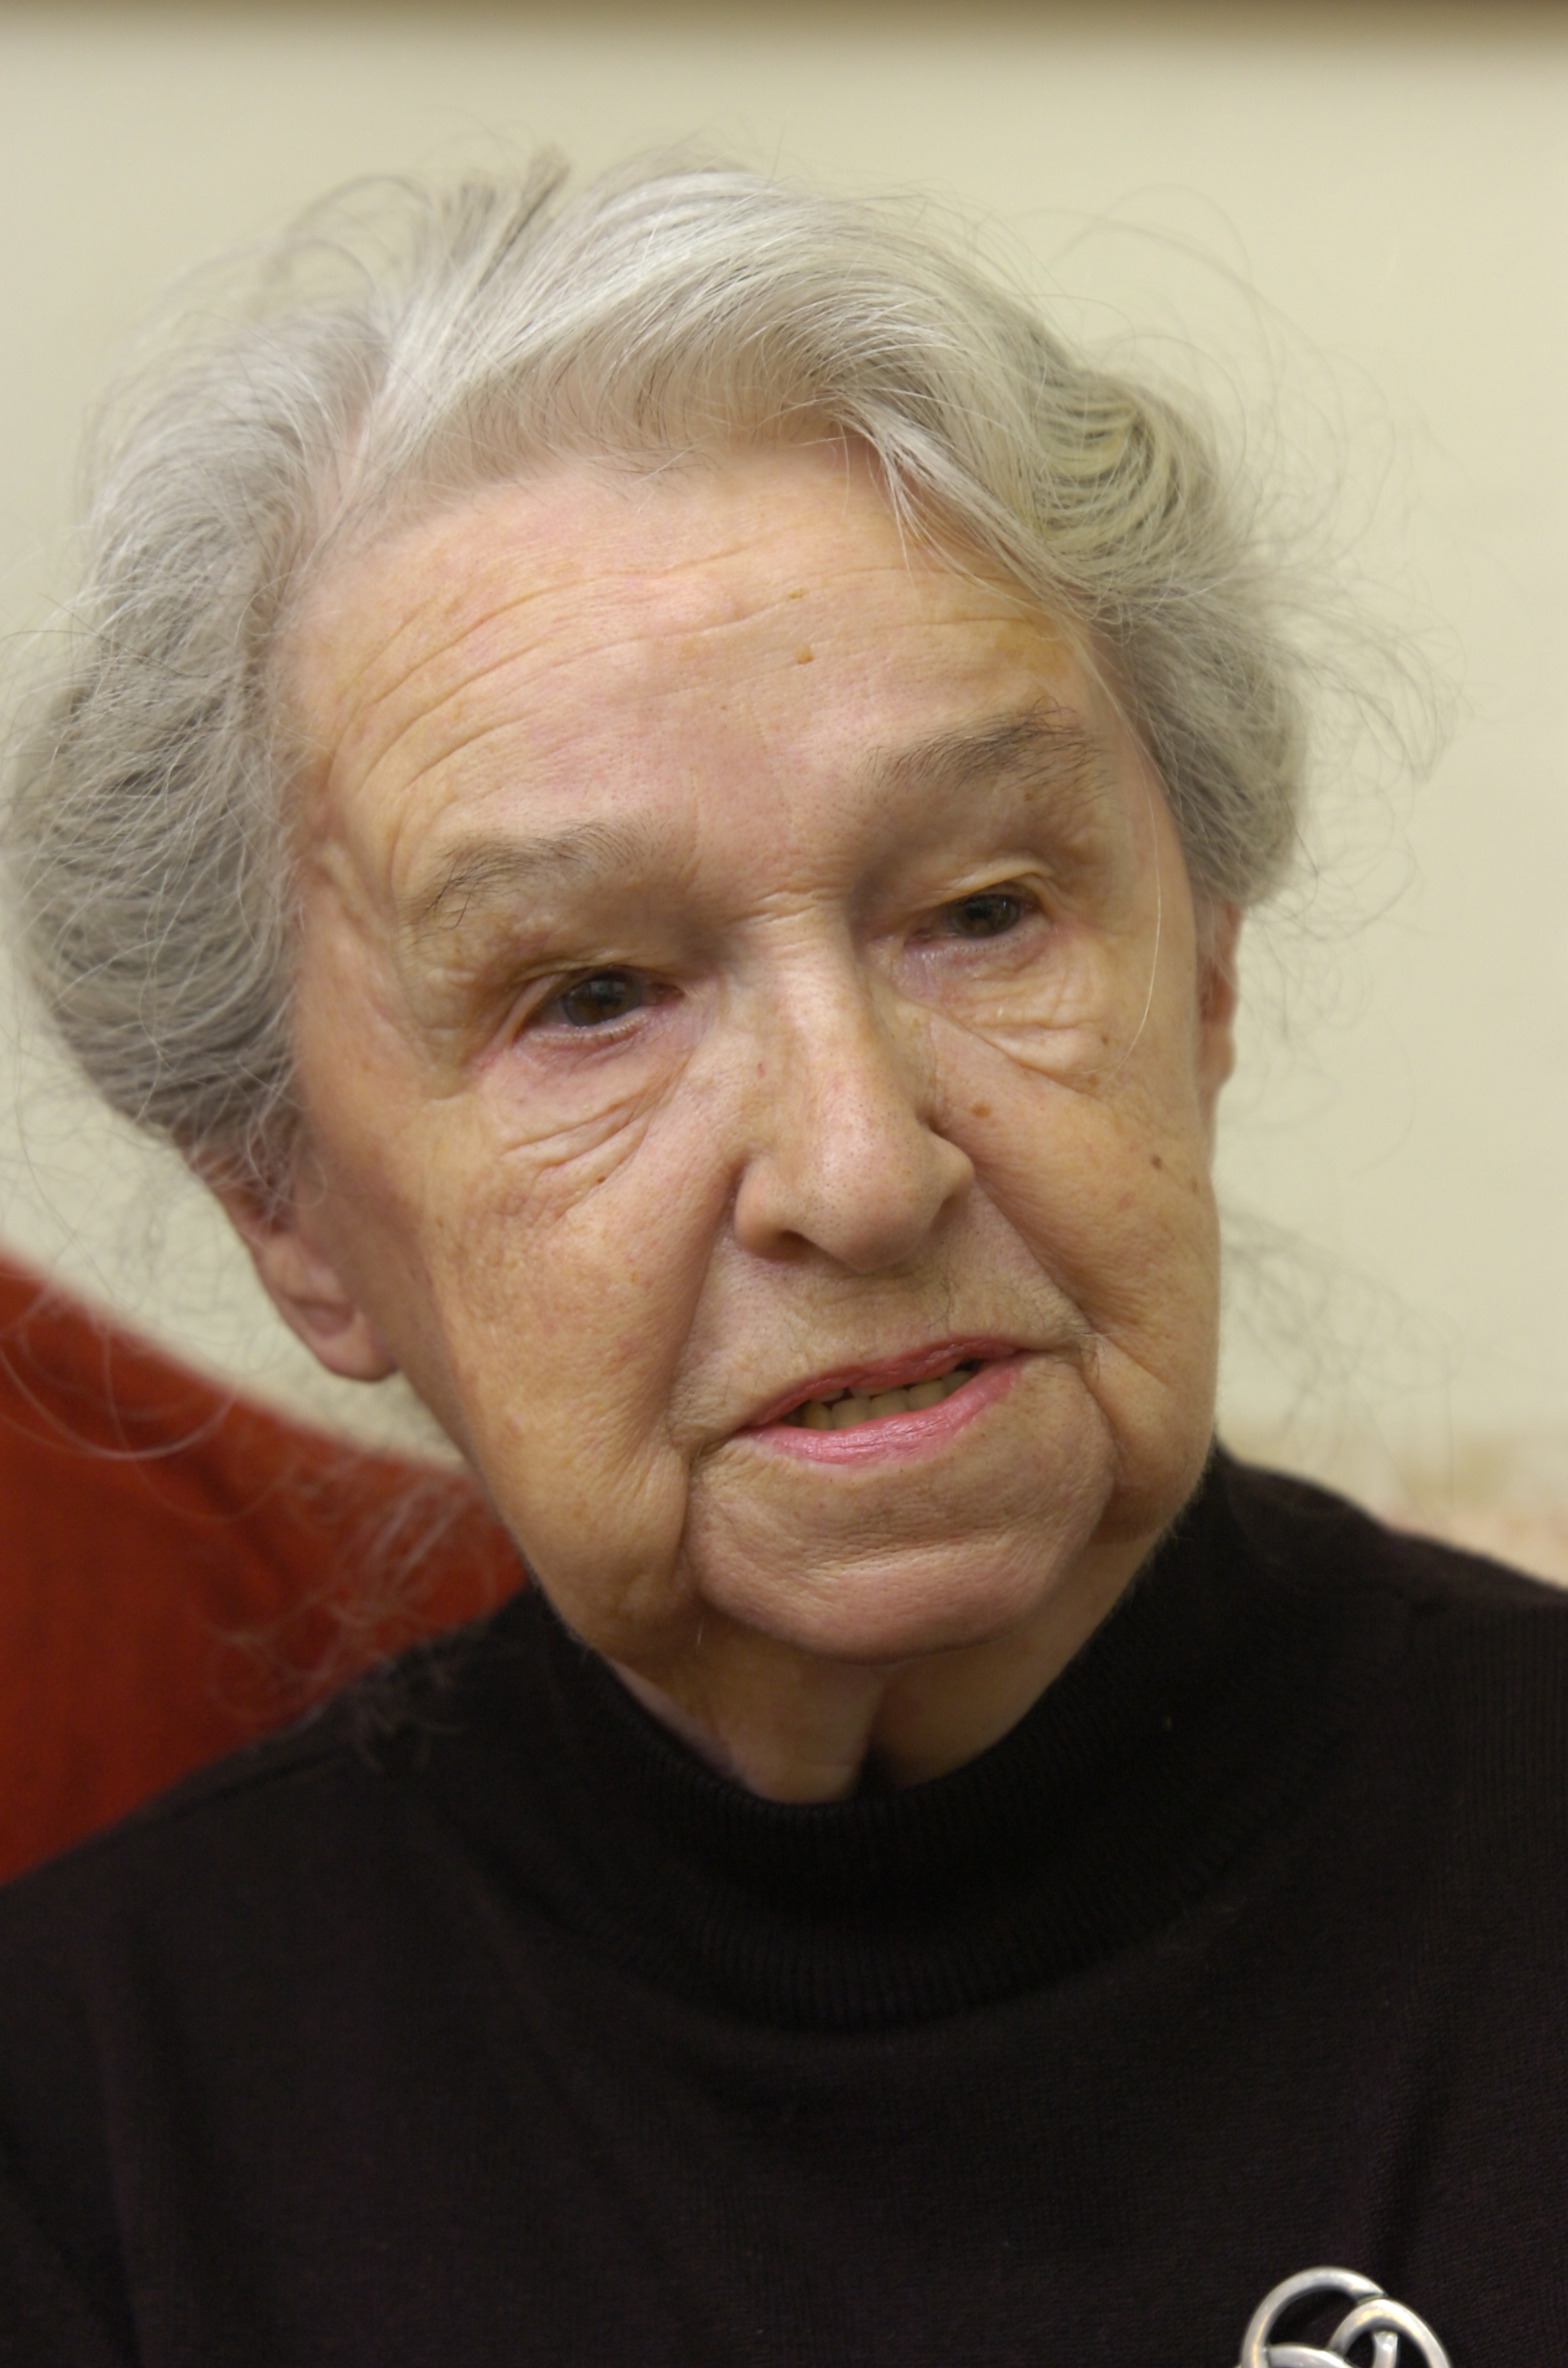 Jean Hearn (image from The Examiner)